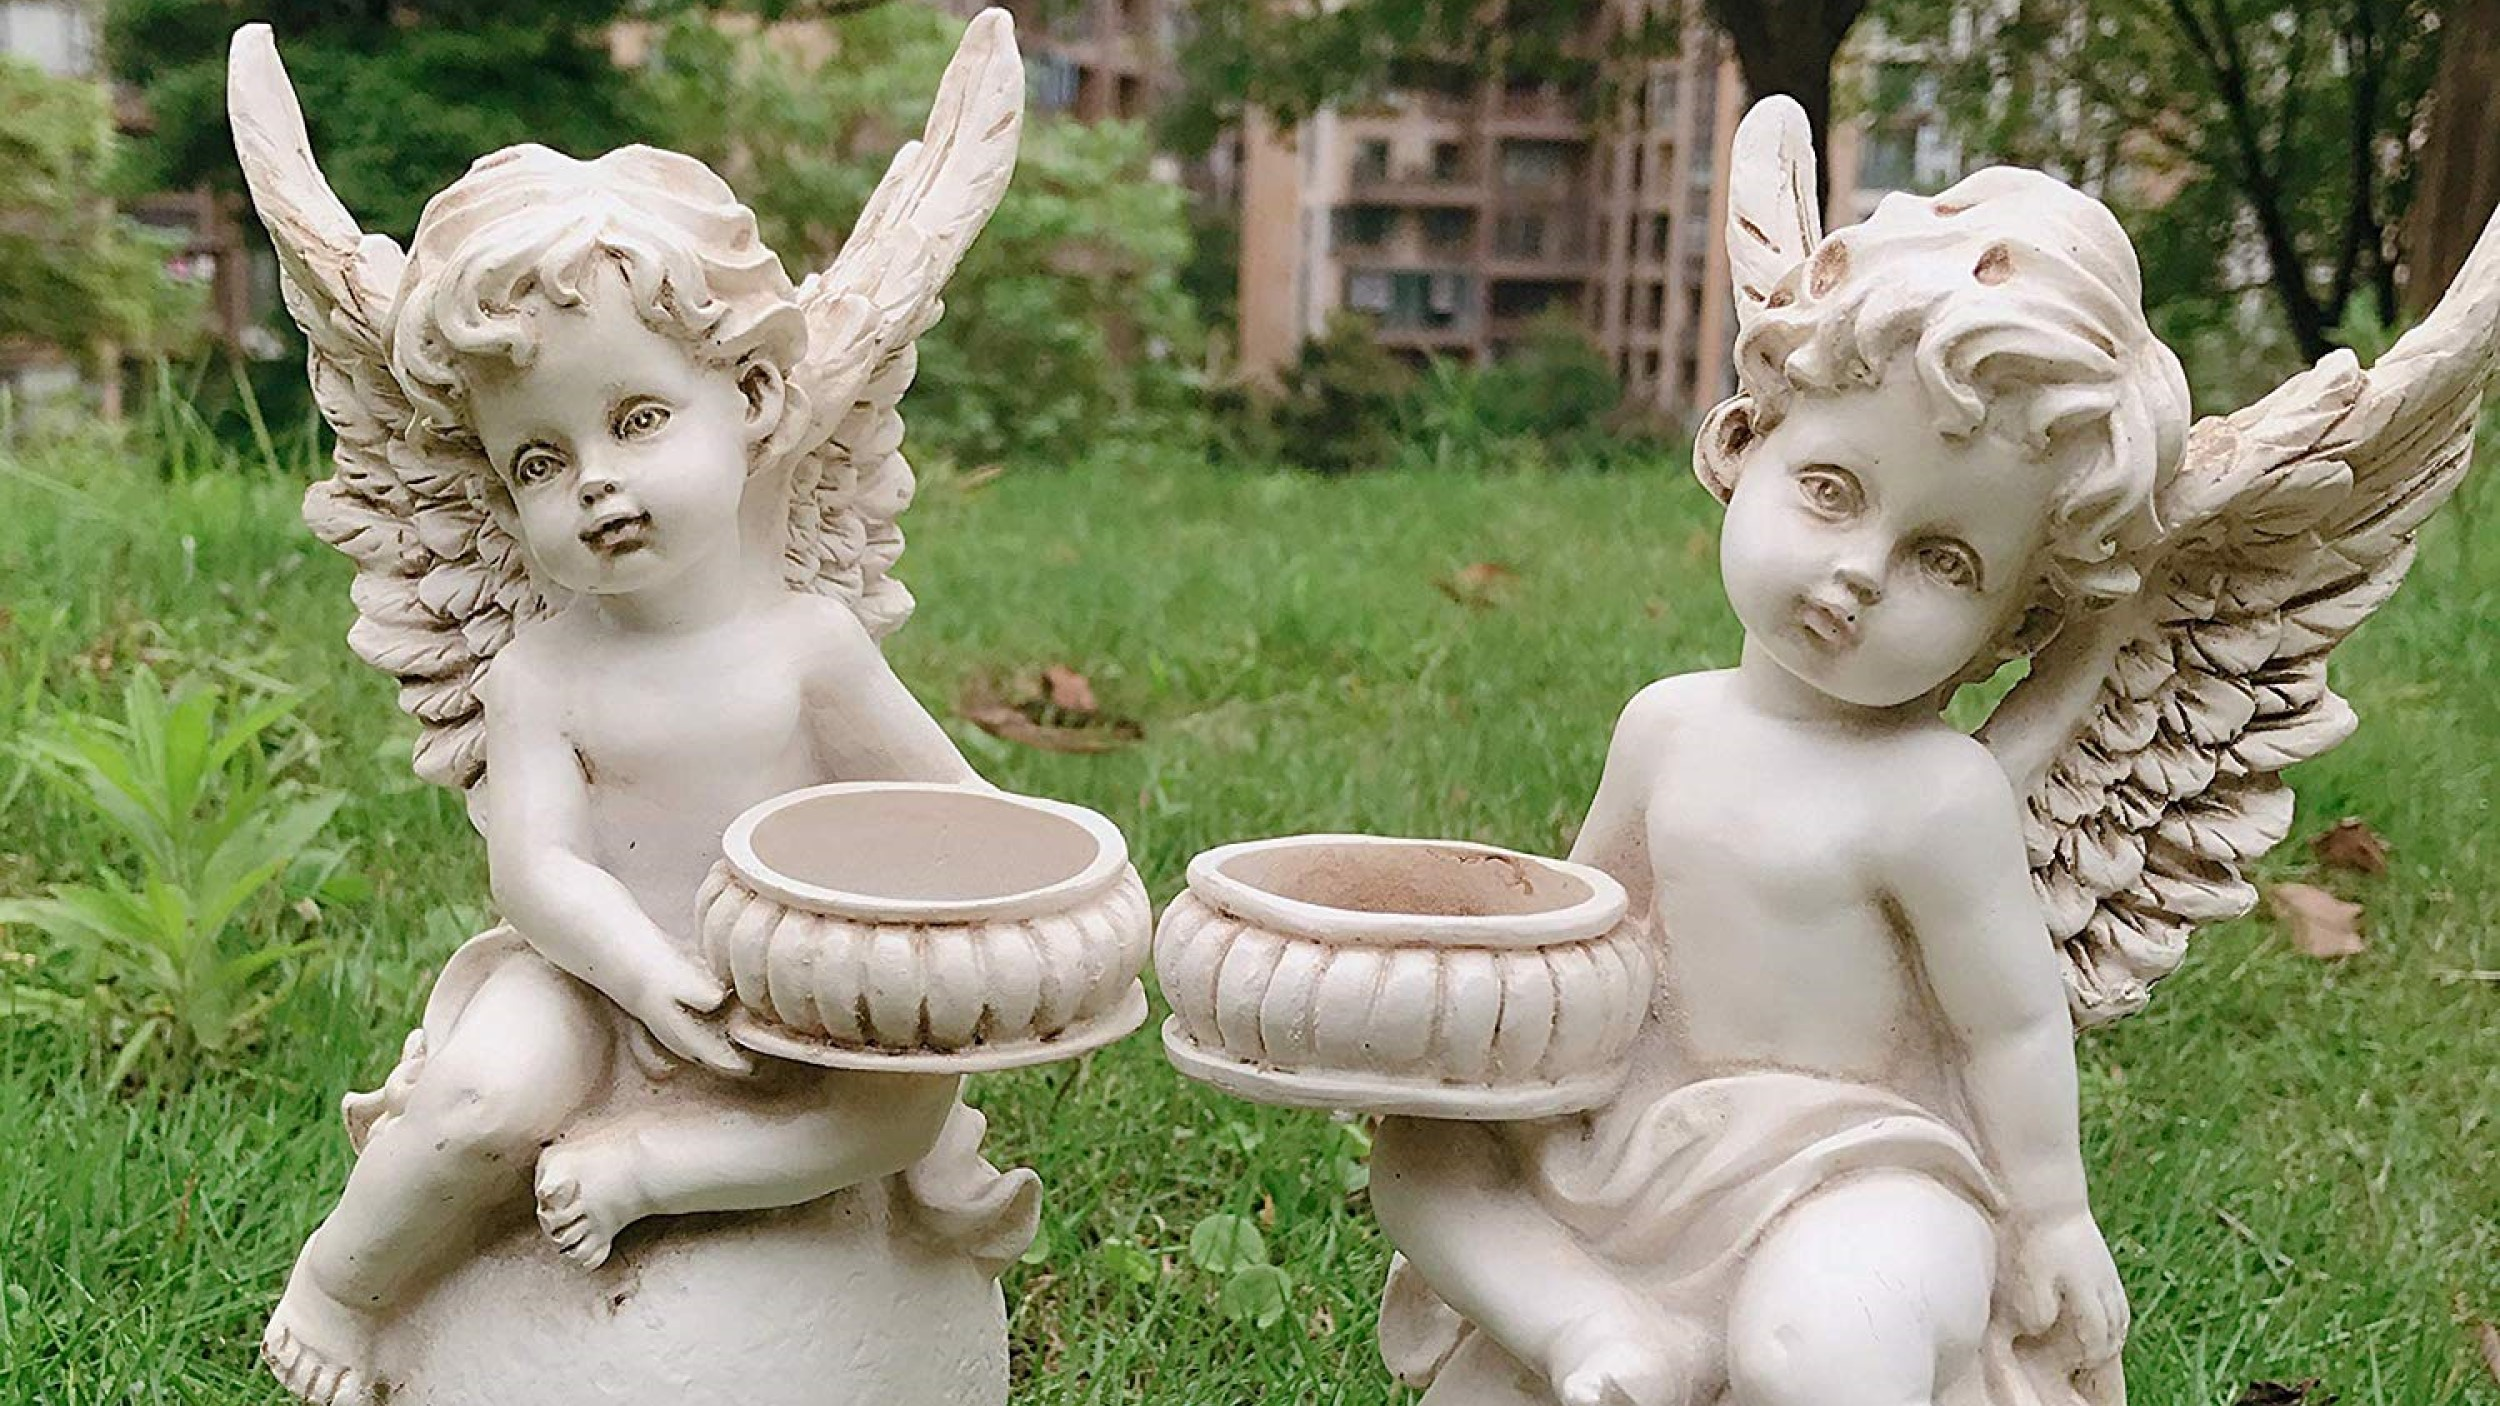 Garden ornaments: 10 quirky picks to cheer up your outdoor space